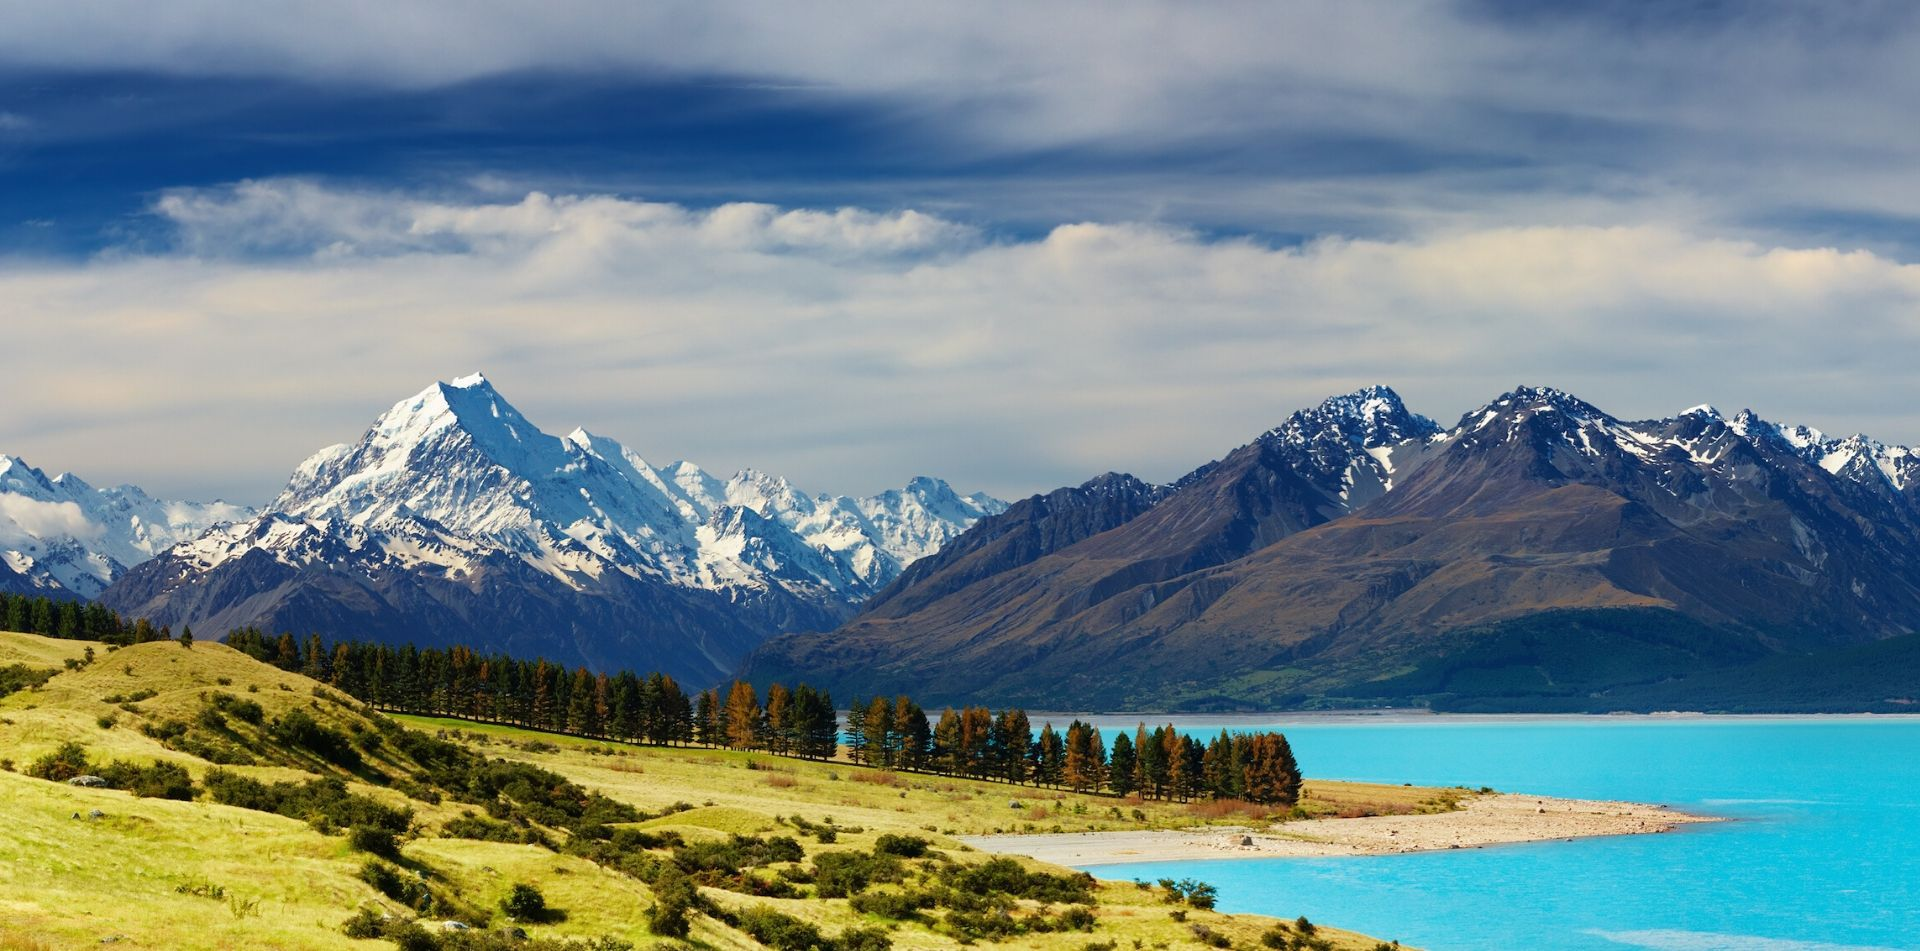 Oceania New Zealand Aoraki Mount Cook National Park with bright blue water - luxury vacation destinations